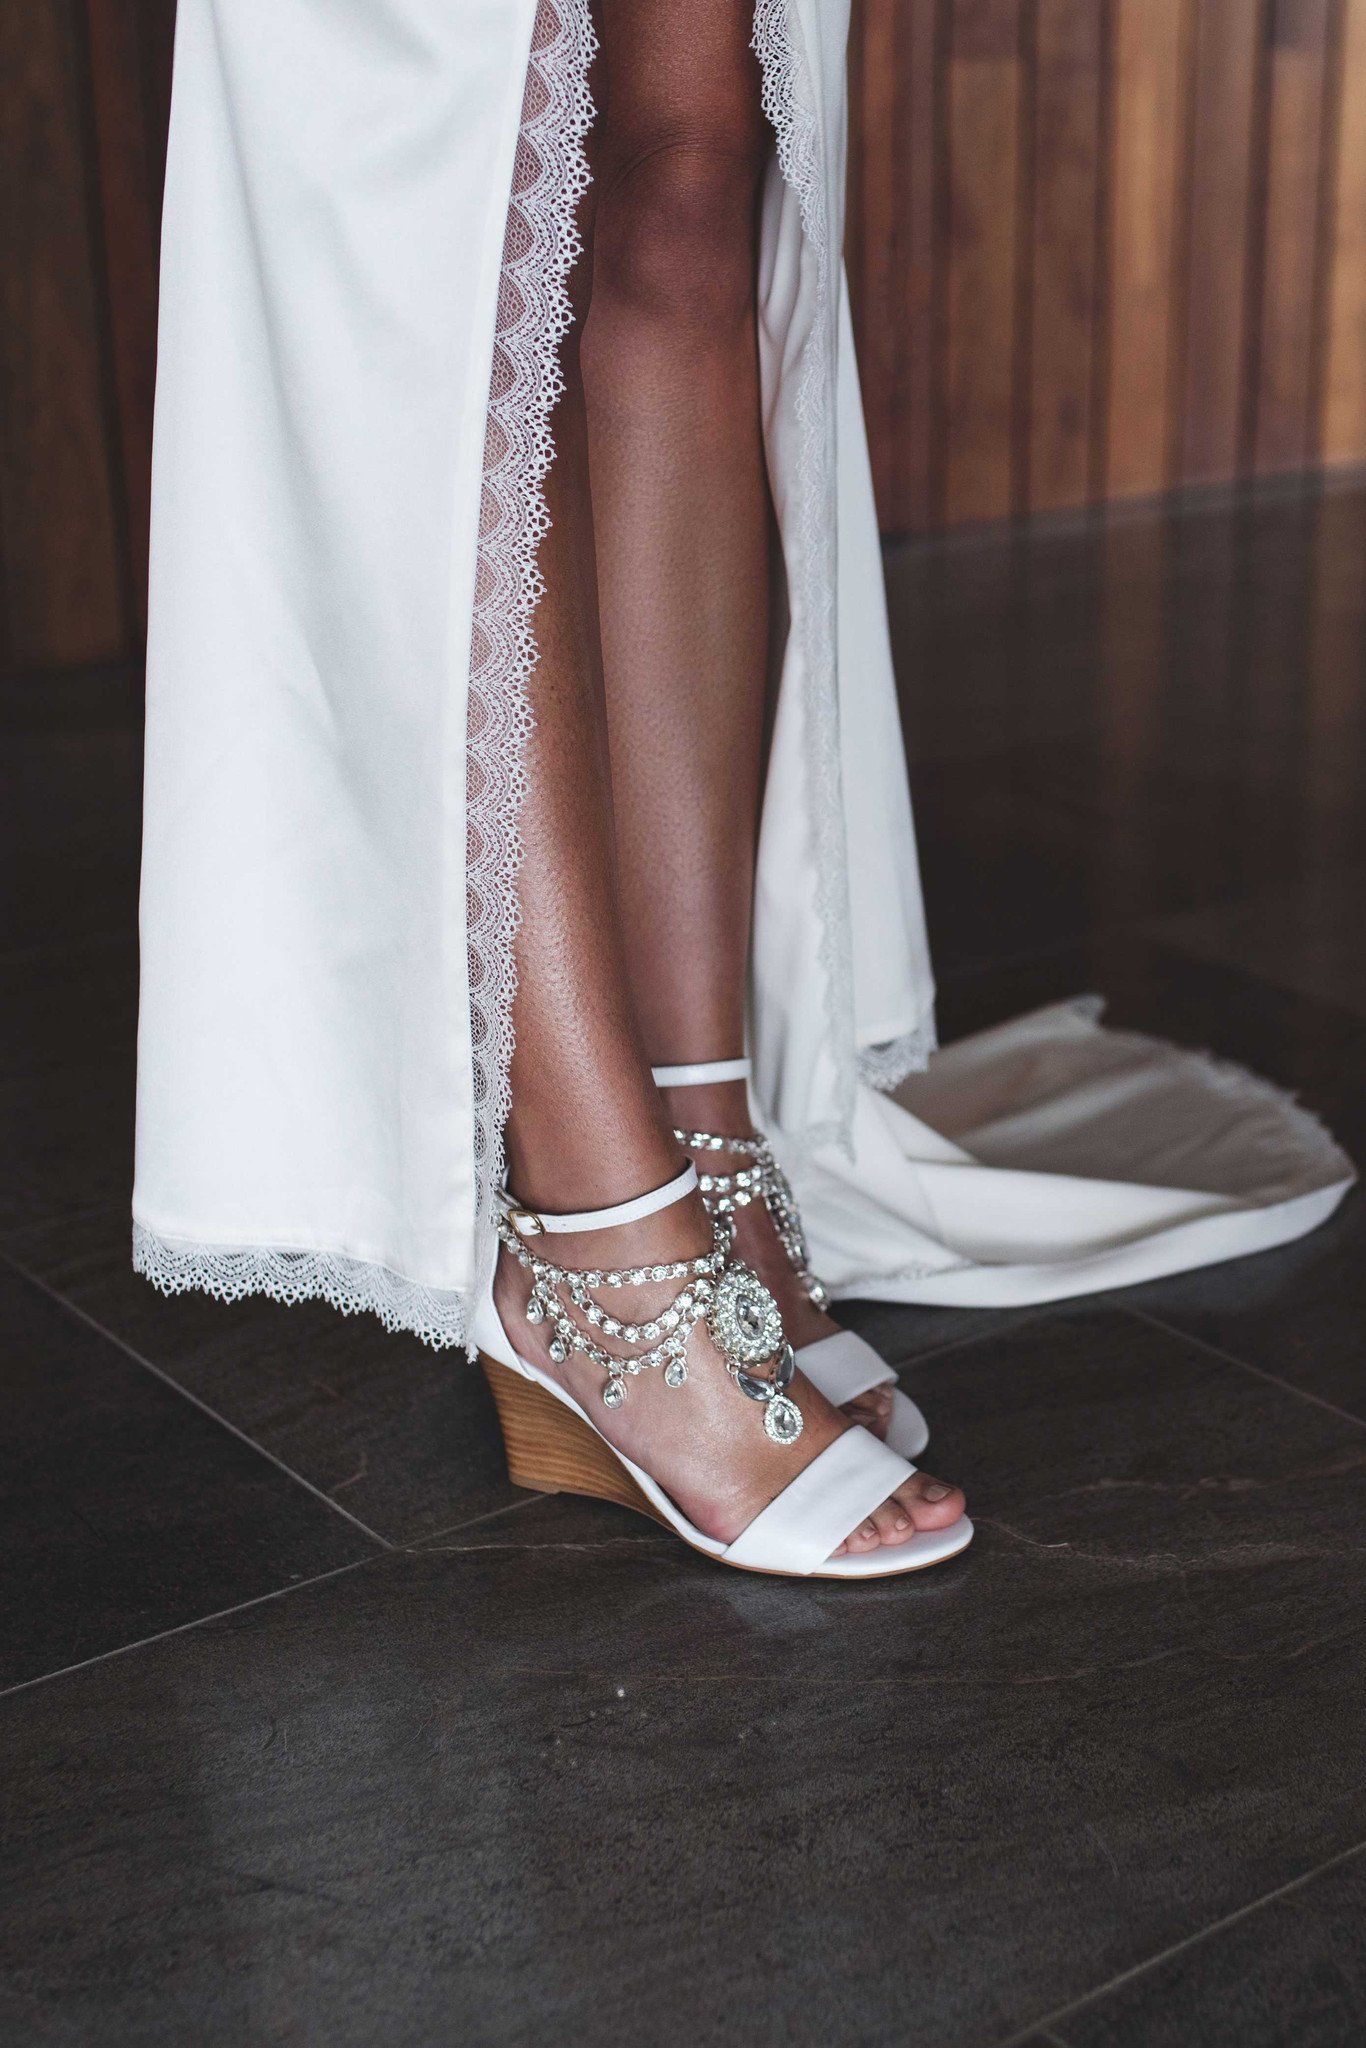 White Leather Bridal Shoes Wedge Heels For The Wedding Day